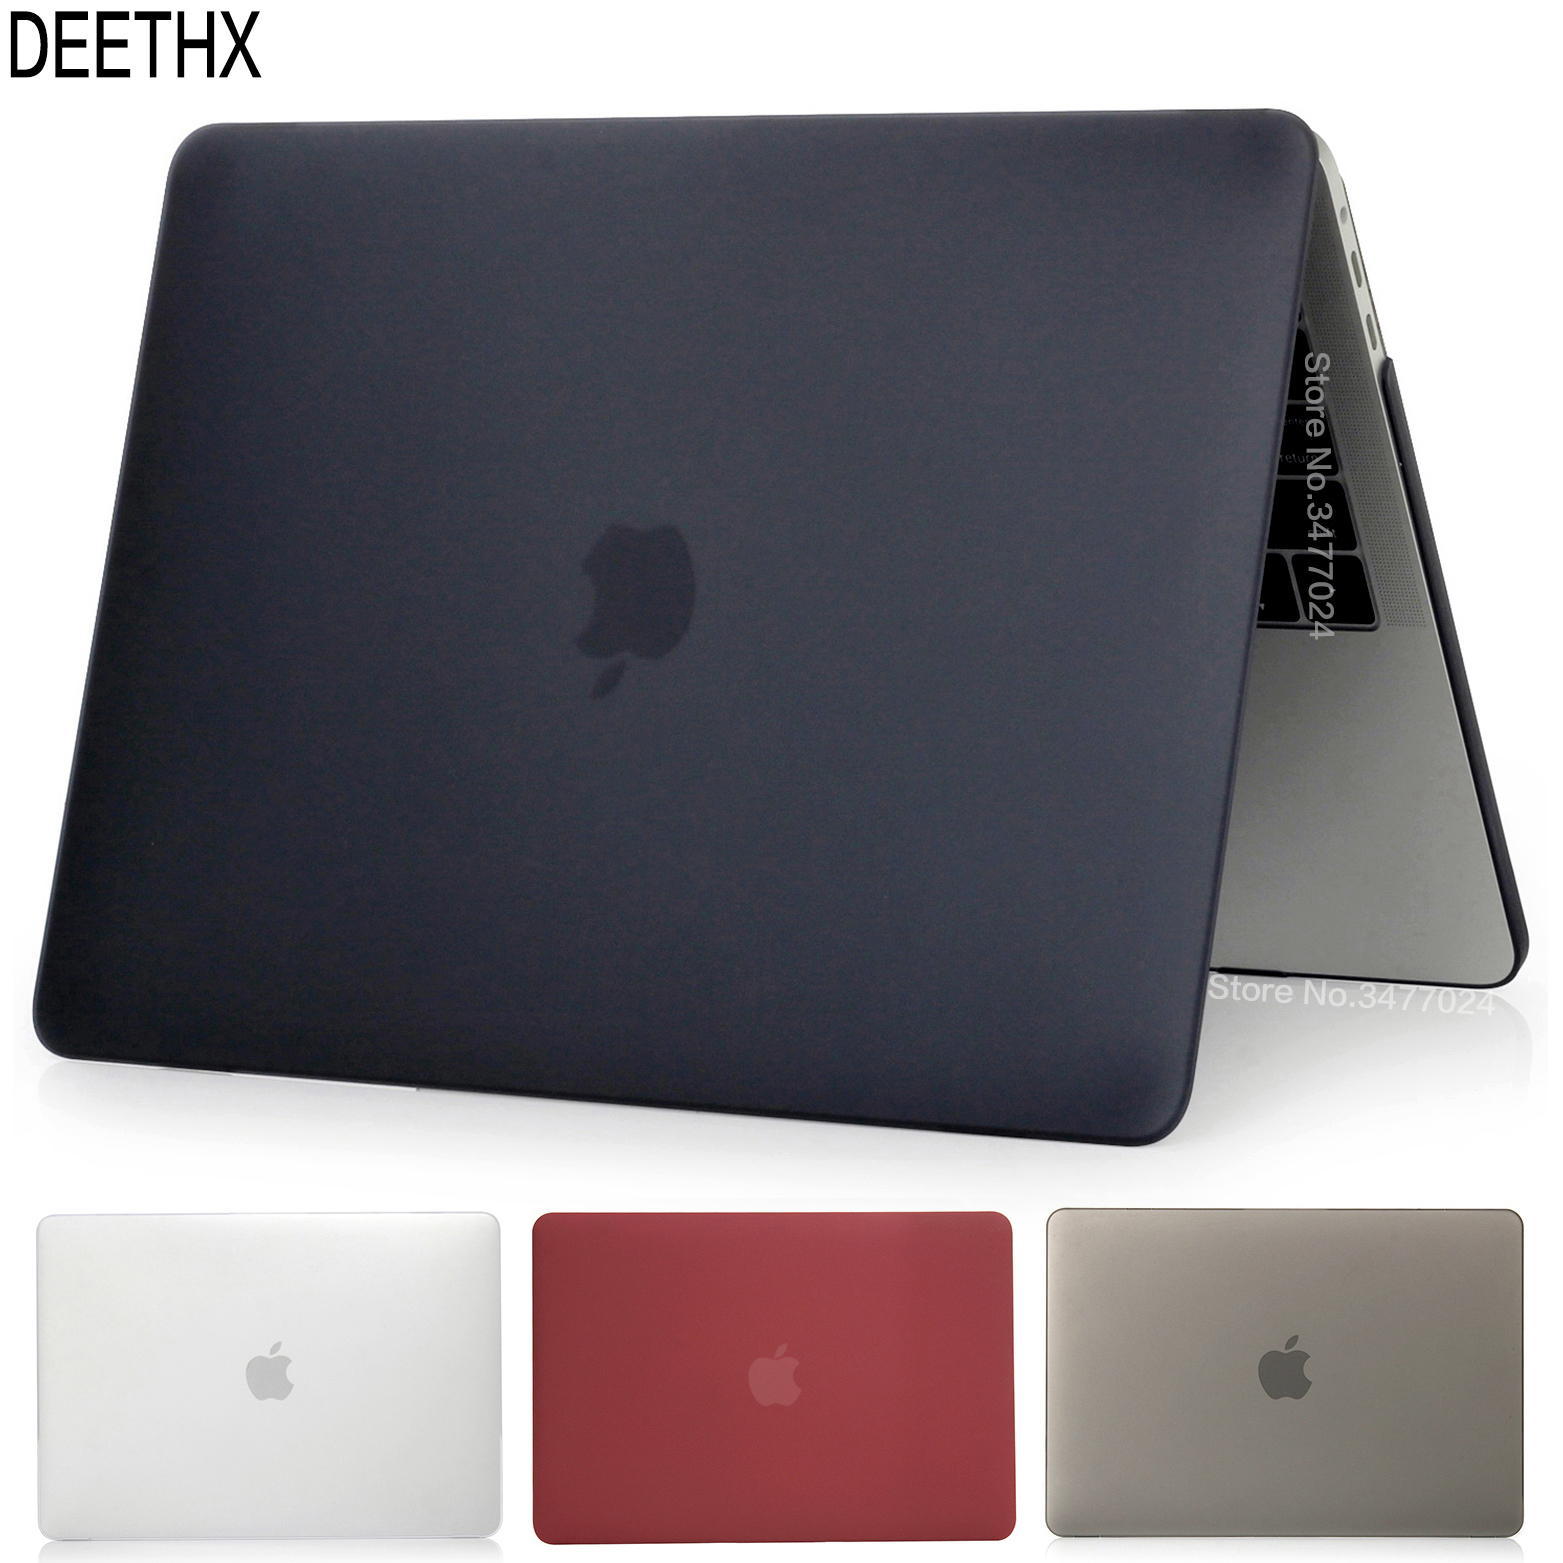 Matte/crystal,Laptop Case For Macbook Pro Retina Air 11 12 13 15, For Mac Air 13 A1466 A1932,2019 New Pro 13.3 15 16 Shell Cover